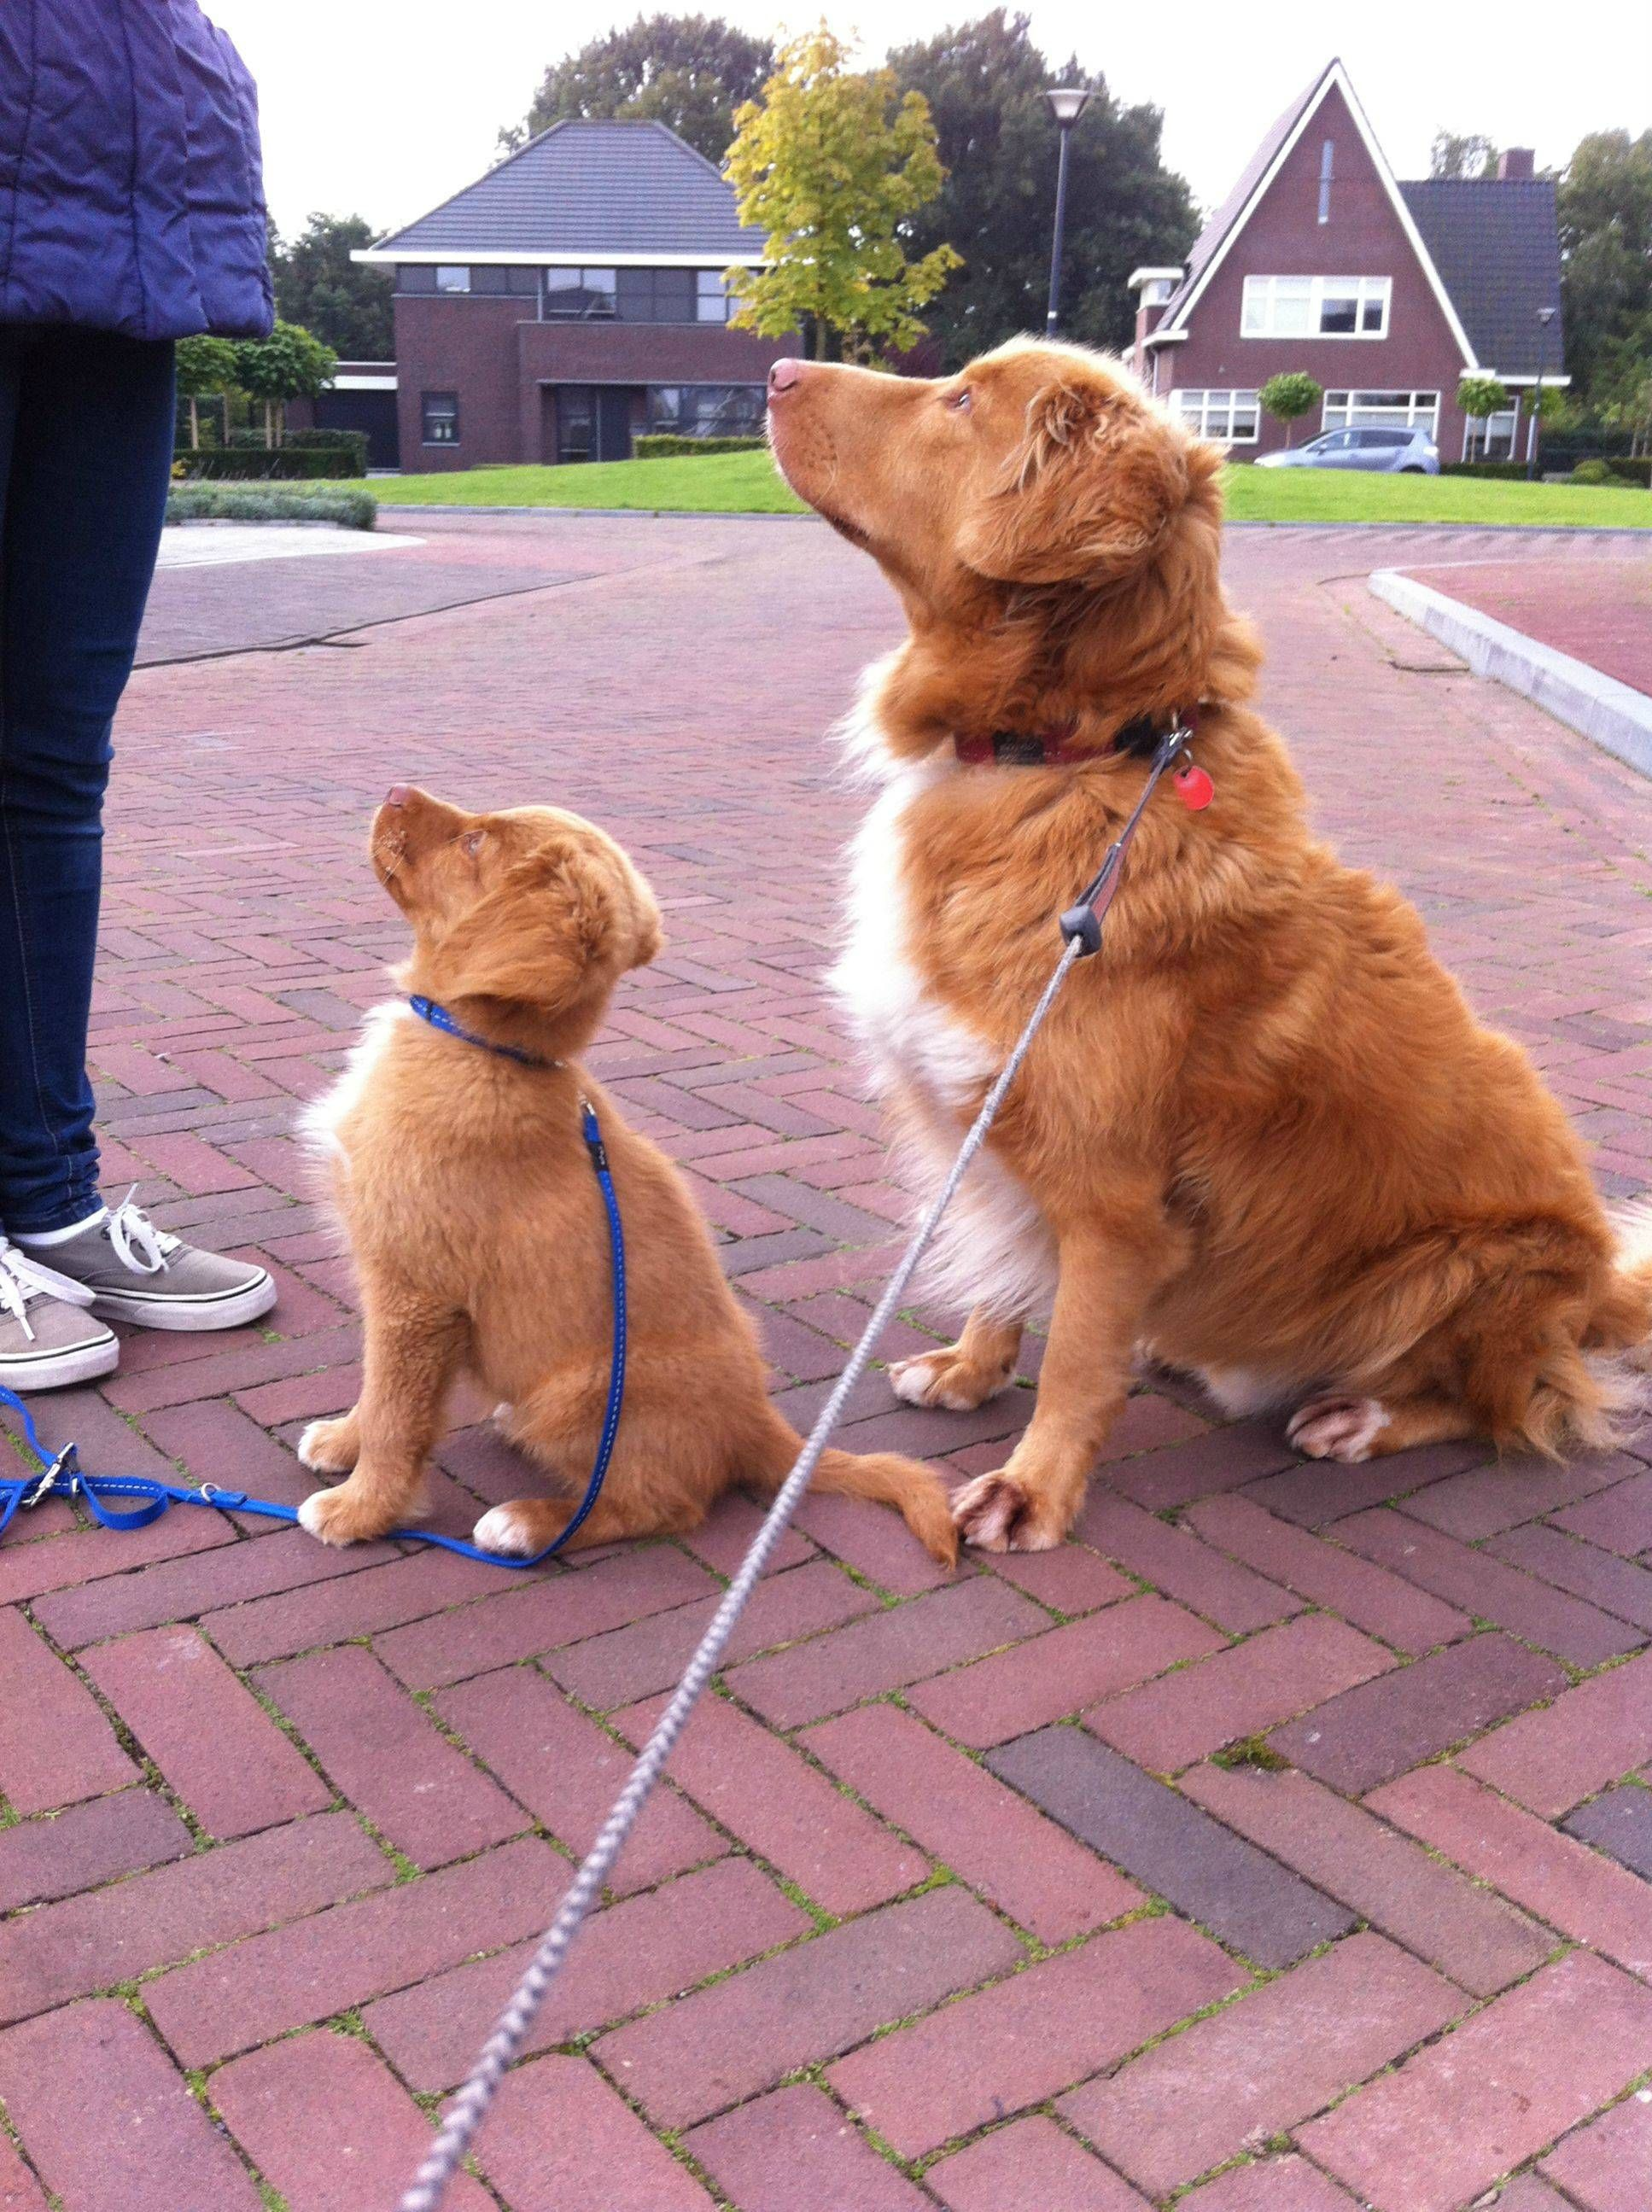 Via Reddit Proud Of Our Boys Finn 2 5 Months Old And Lewis 6 Years Old Duck Tolling Retrievers Dogs And Kids Dogs Retriever Puppy